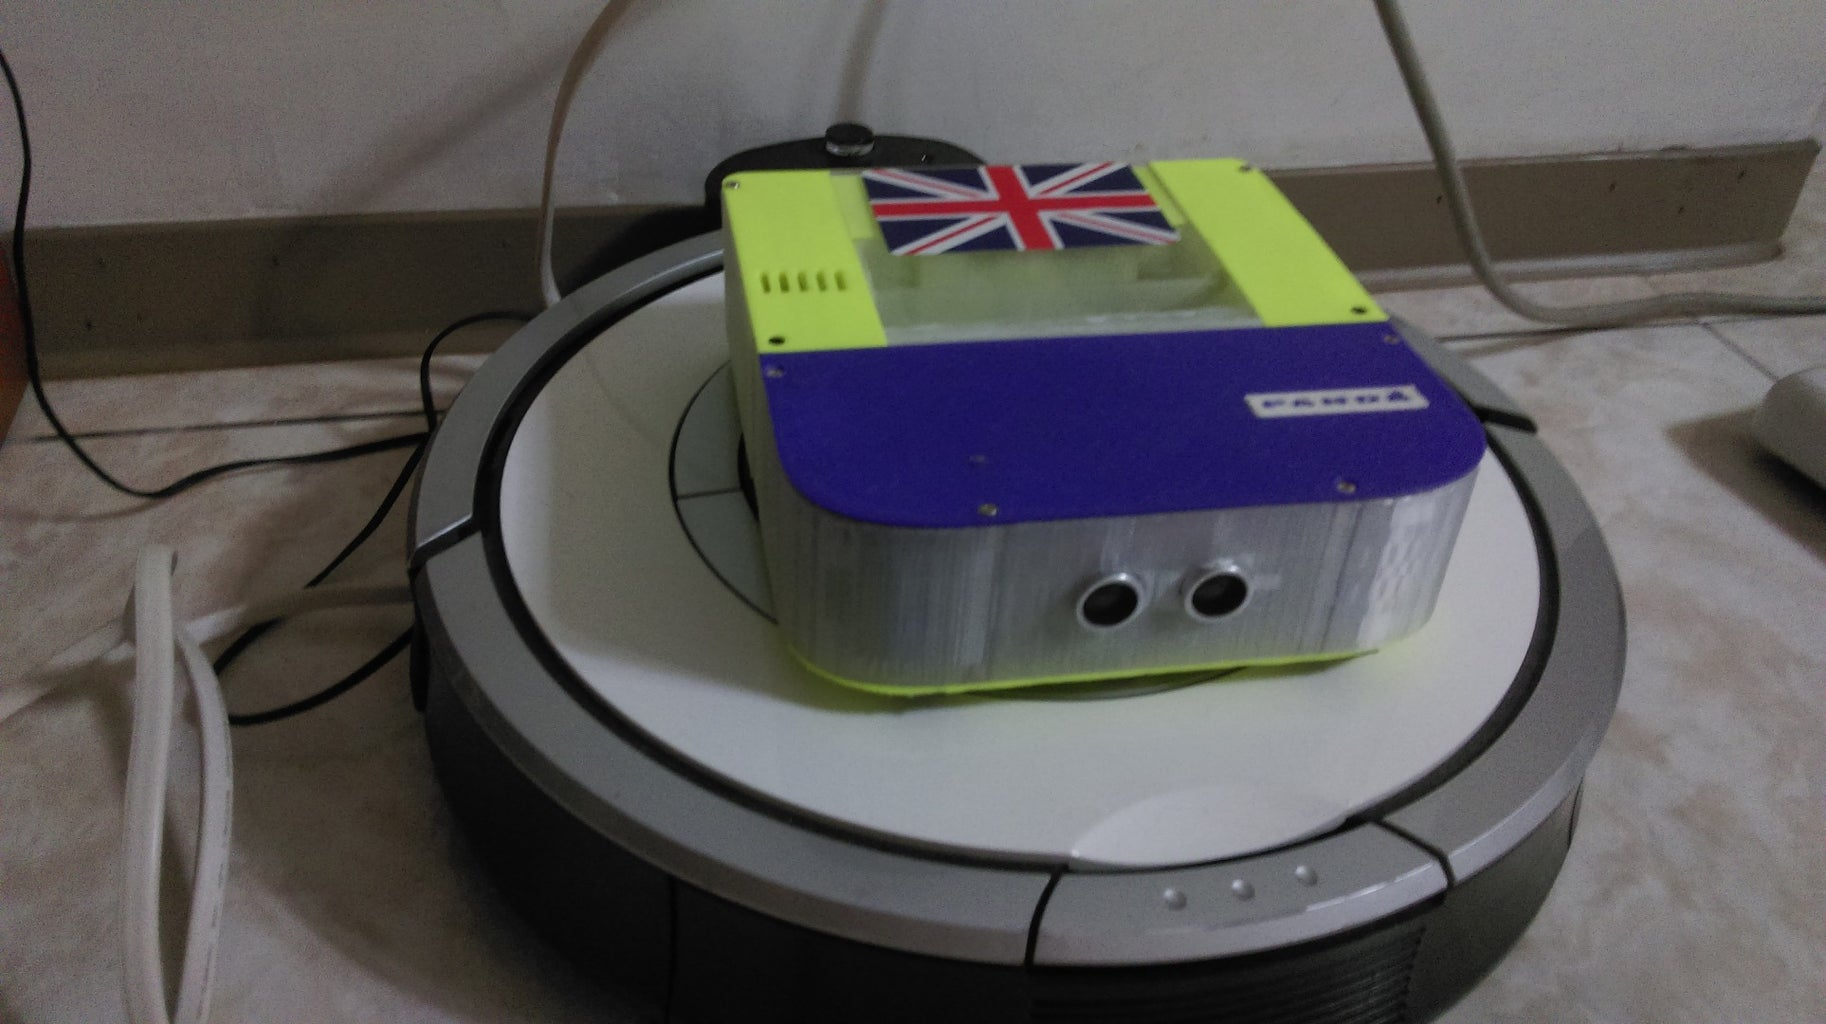 PANDA- THE ULTIMATE CLEANING ROBOT